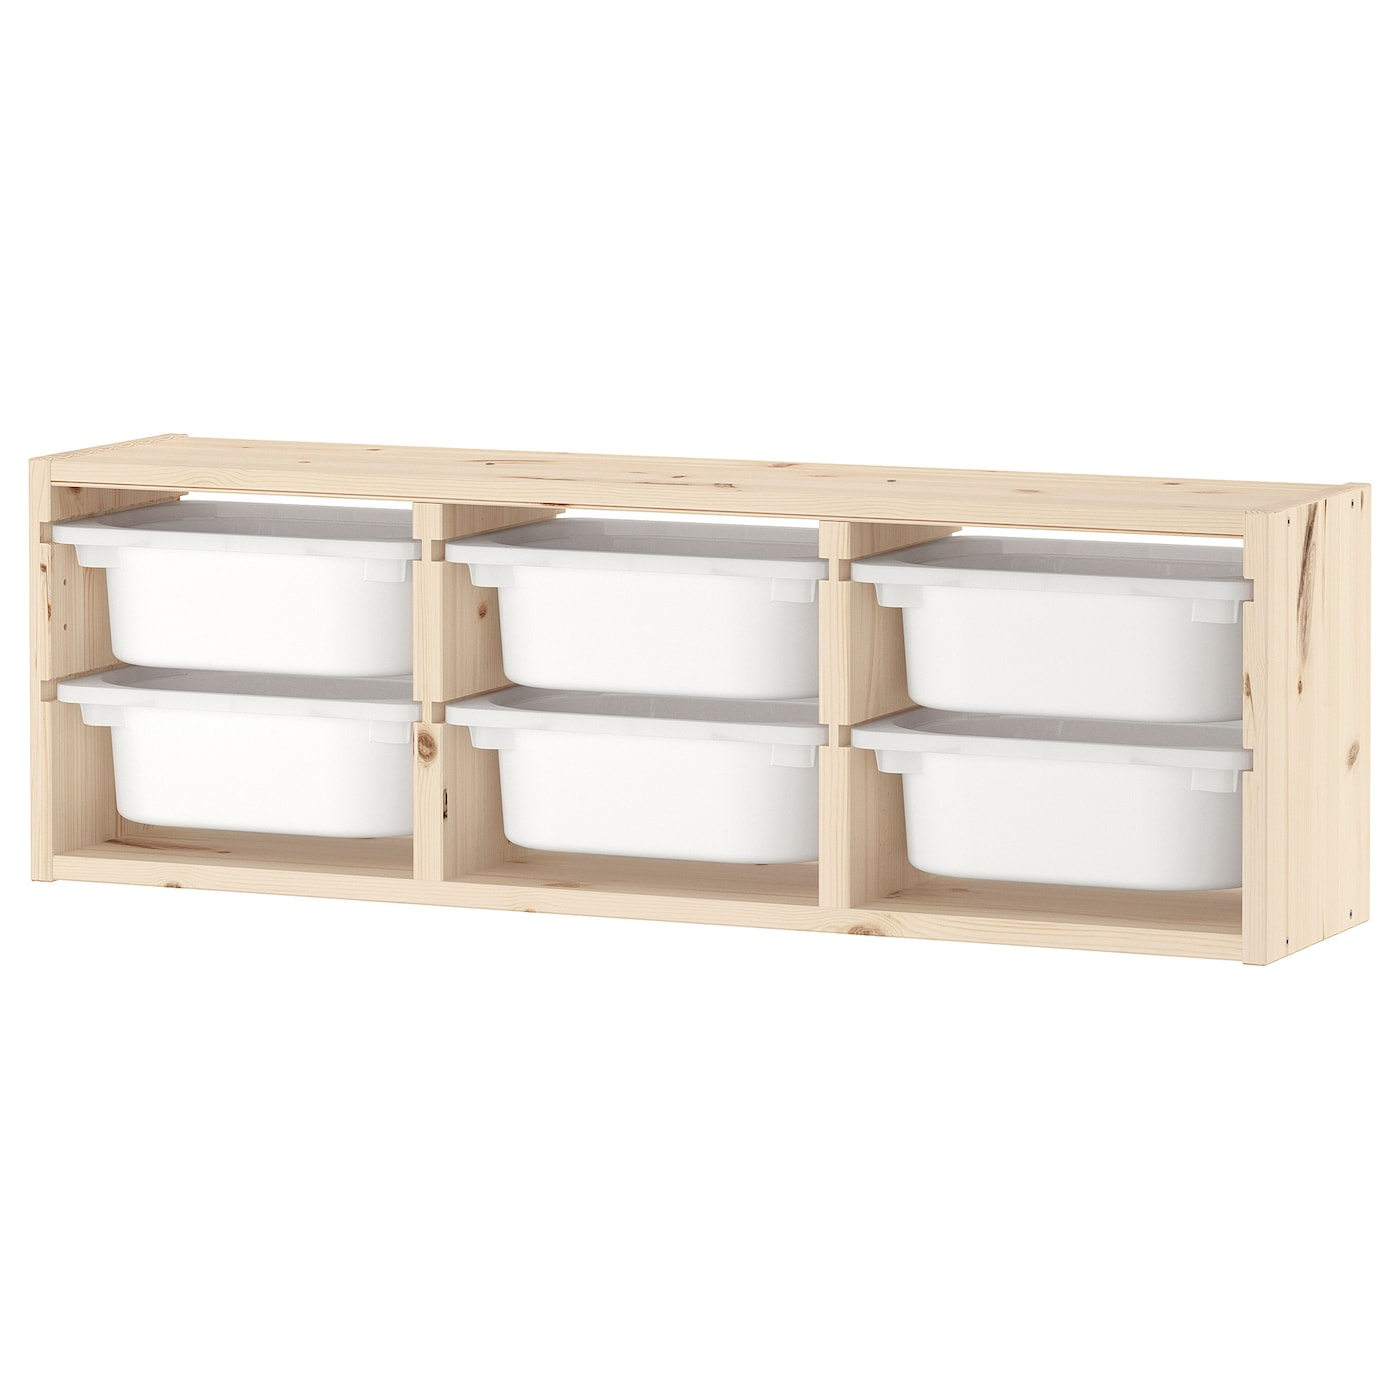 Ikea Trofast Wall Storage A Playful And Sy Series For Storing Organising Toys